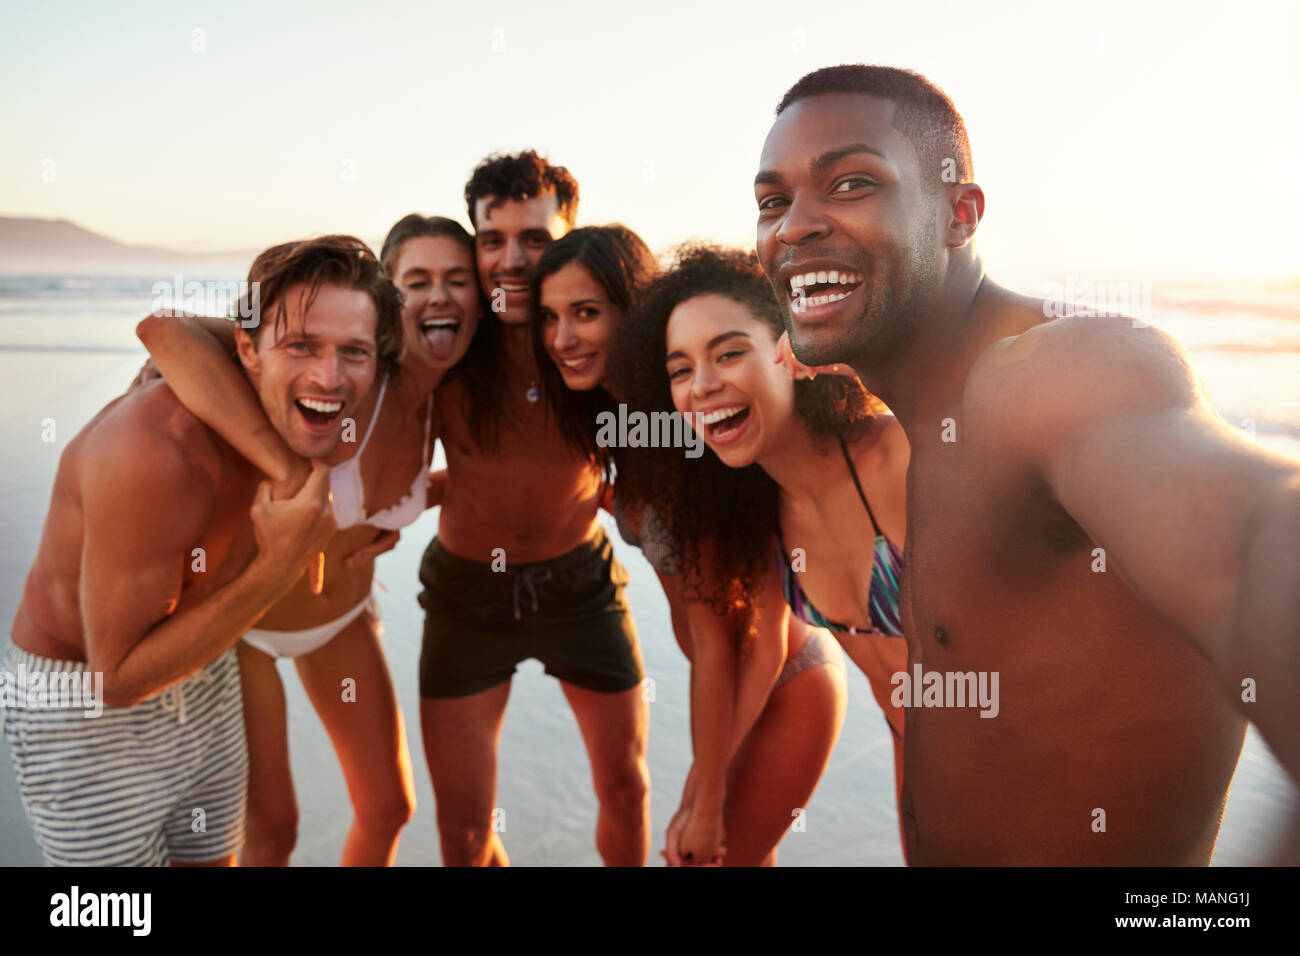 Group of Friends Posing On Beach Selfies pour Locations Photo Stock